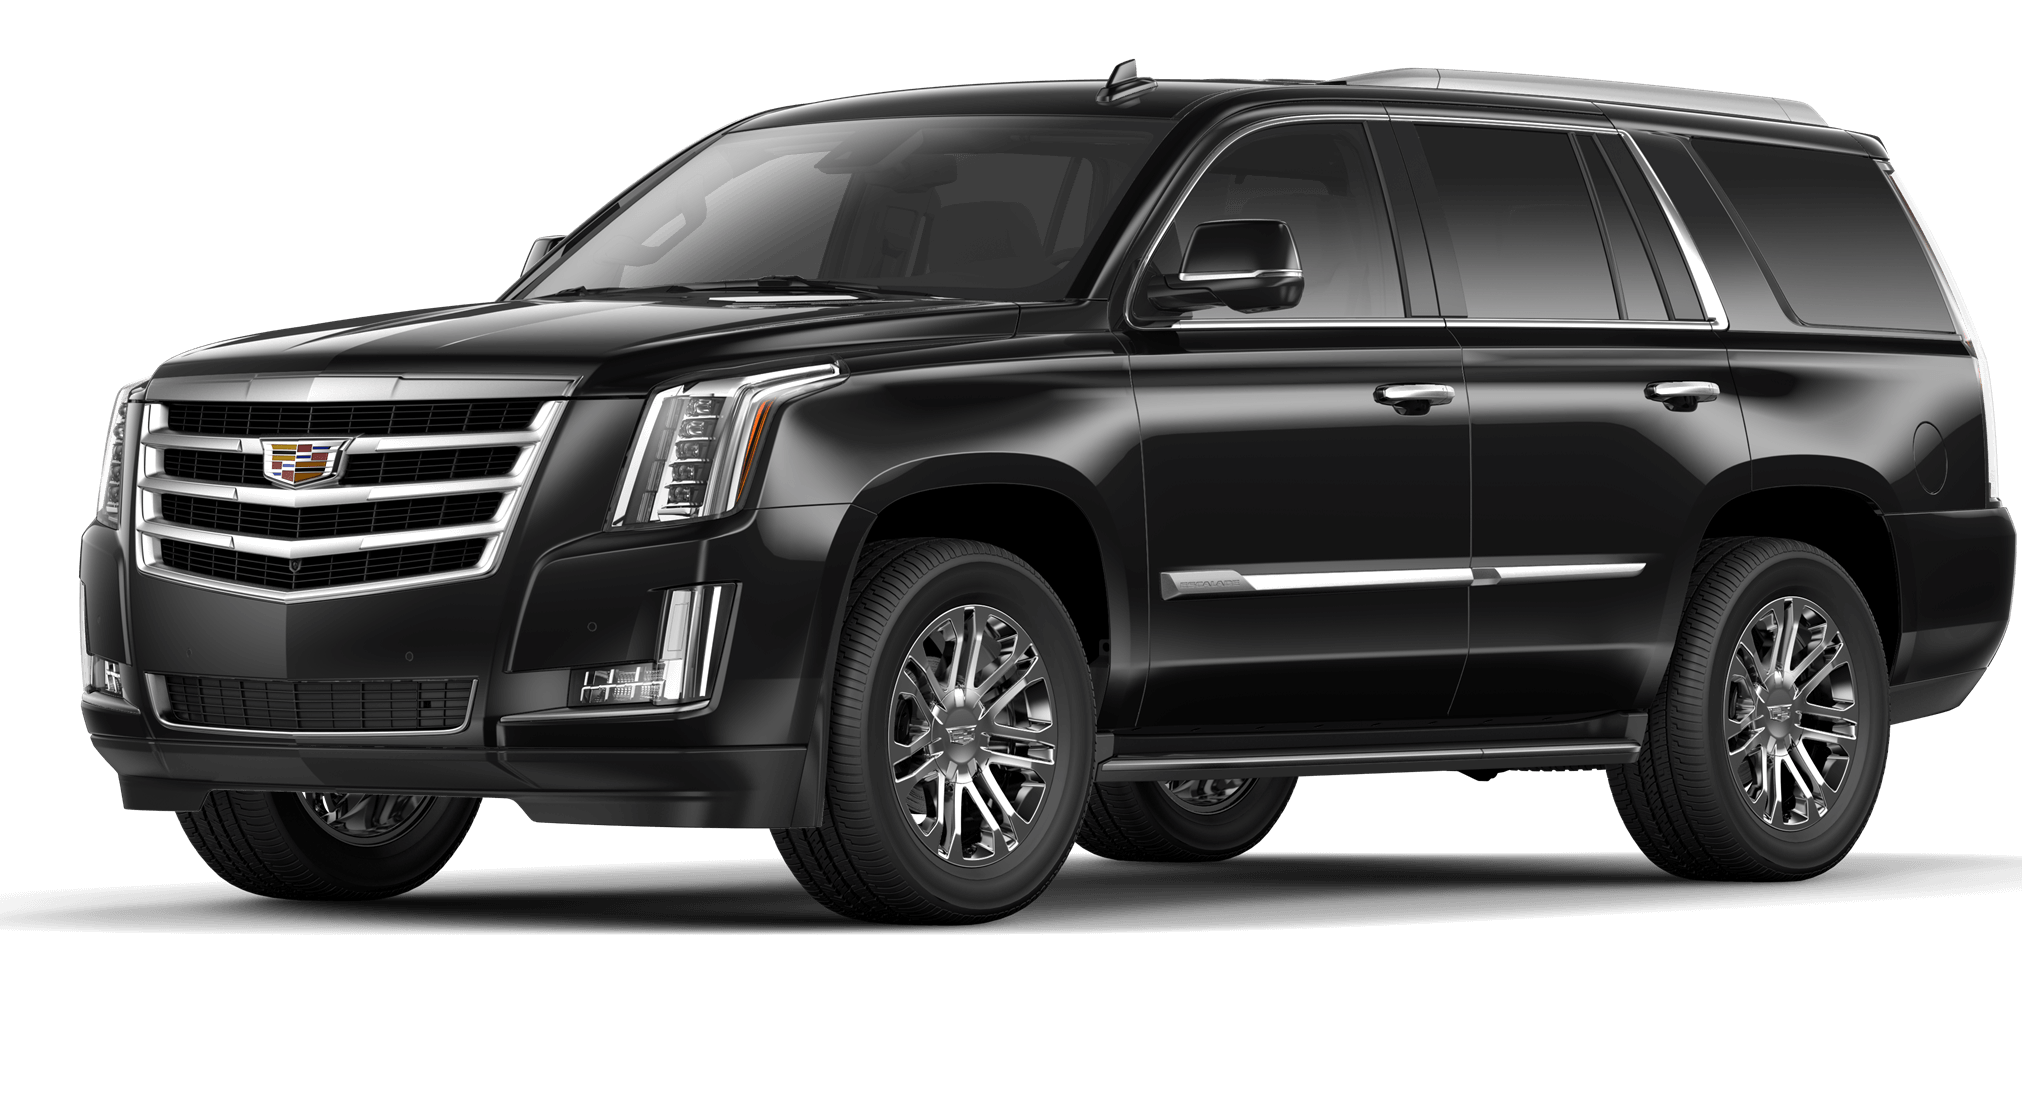 Cadilac car clipart clipart free Cadillac PNG Image - PurePNG | Free transparent CC0 PNG Image Library clipart free